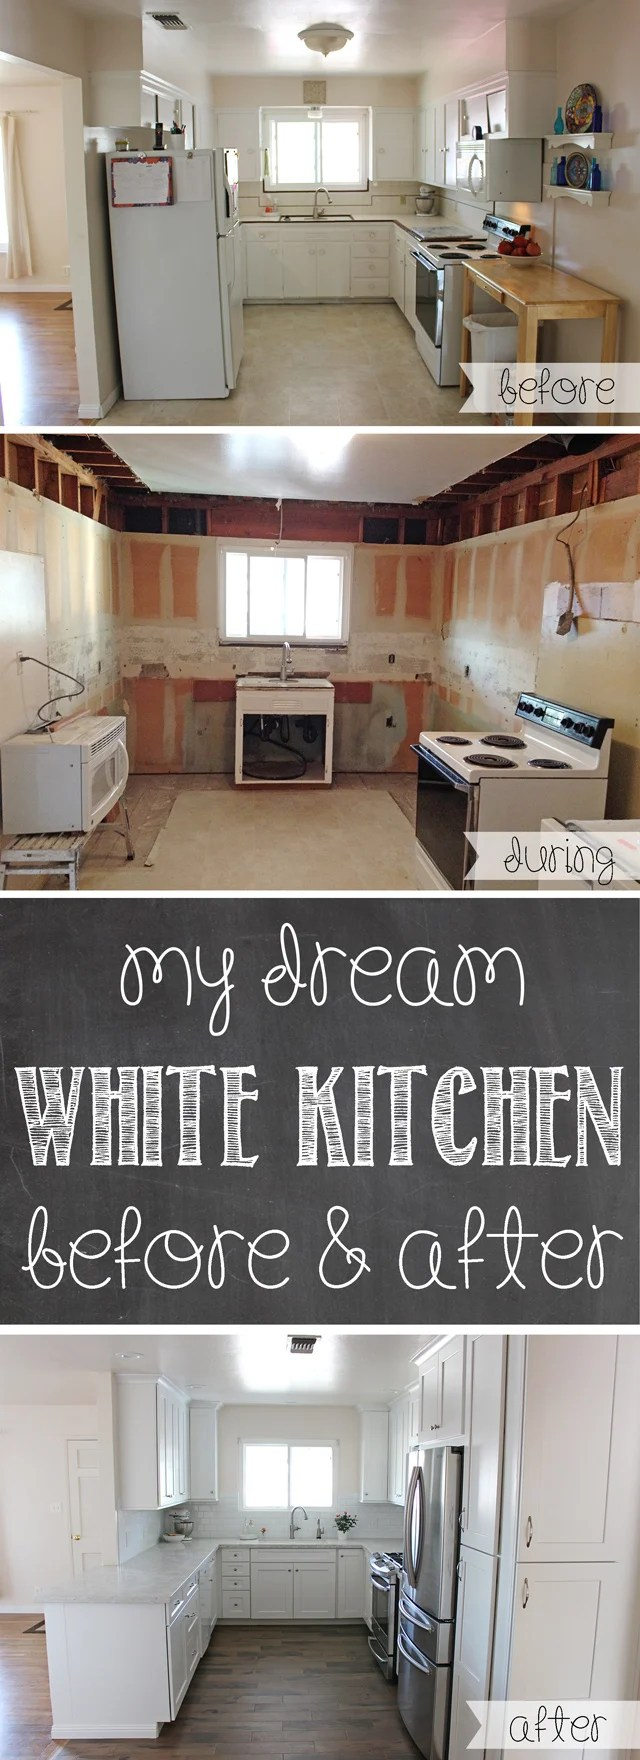 my dream white kitchen cost of kitchen remodel GORGEOUS Kitchen Remodel Lots of before and after photos tips for remodeling cost